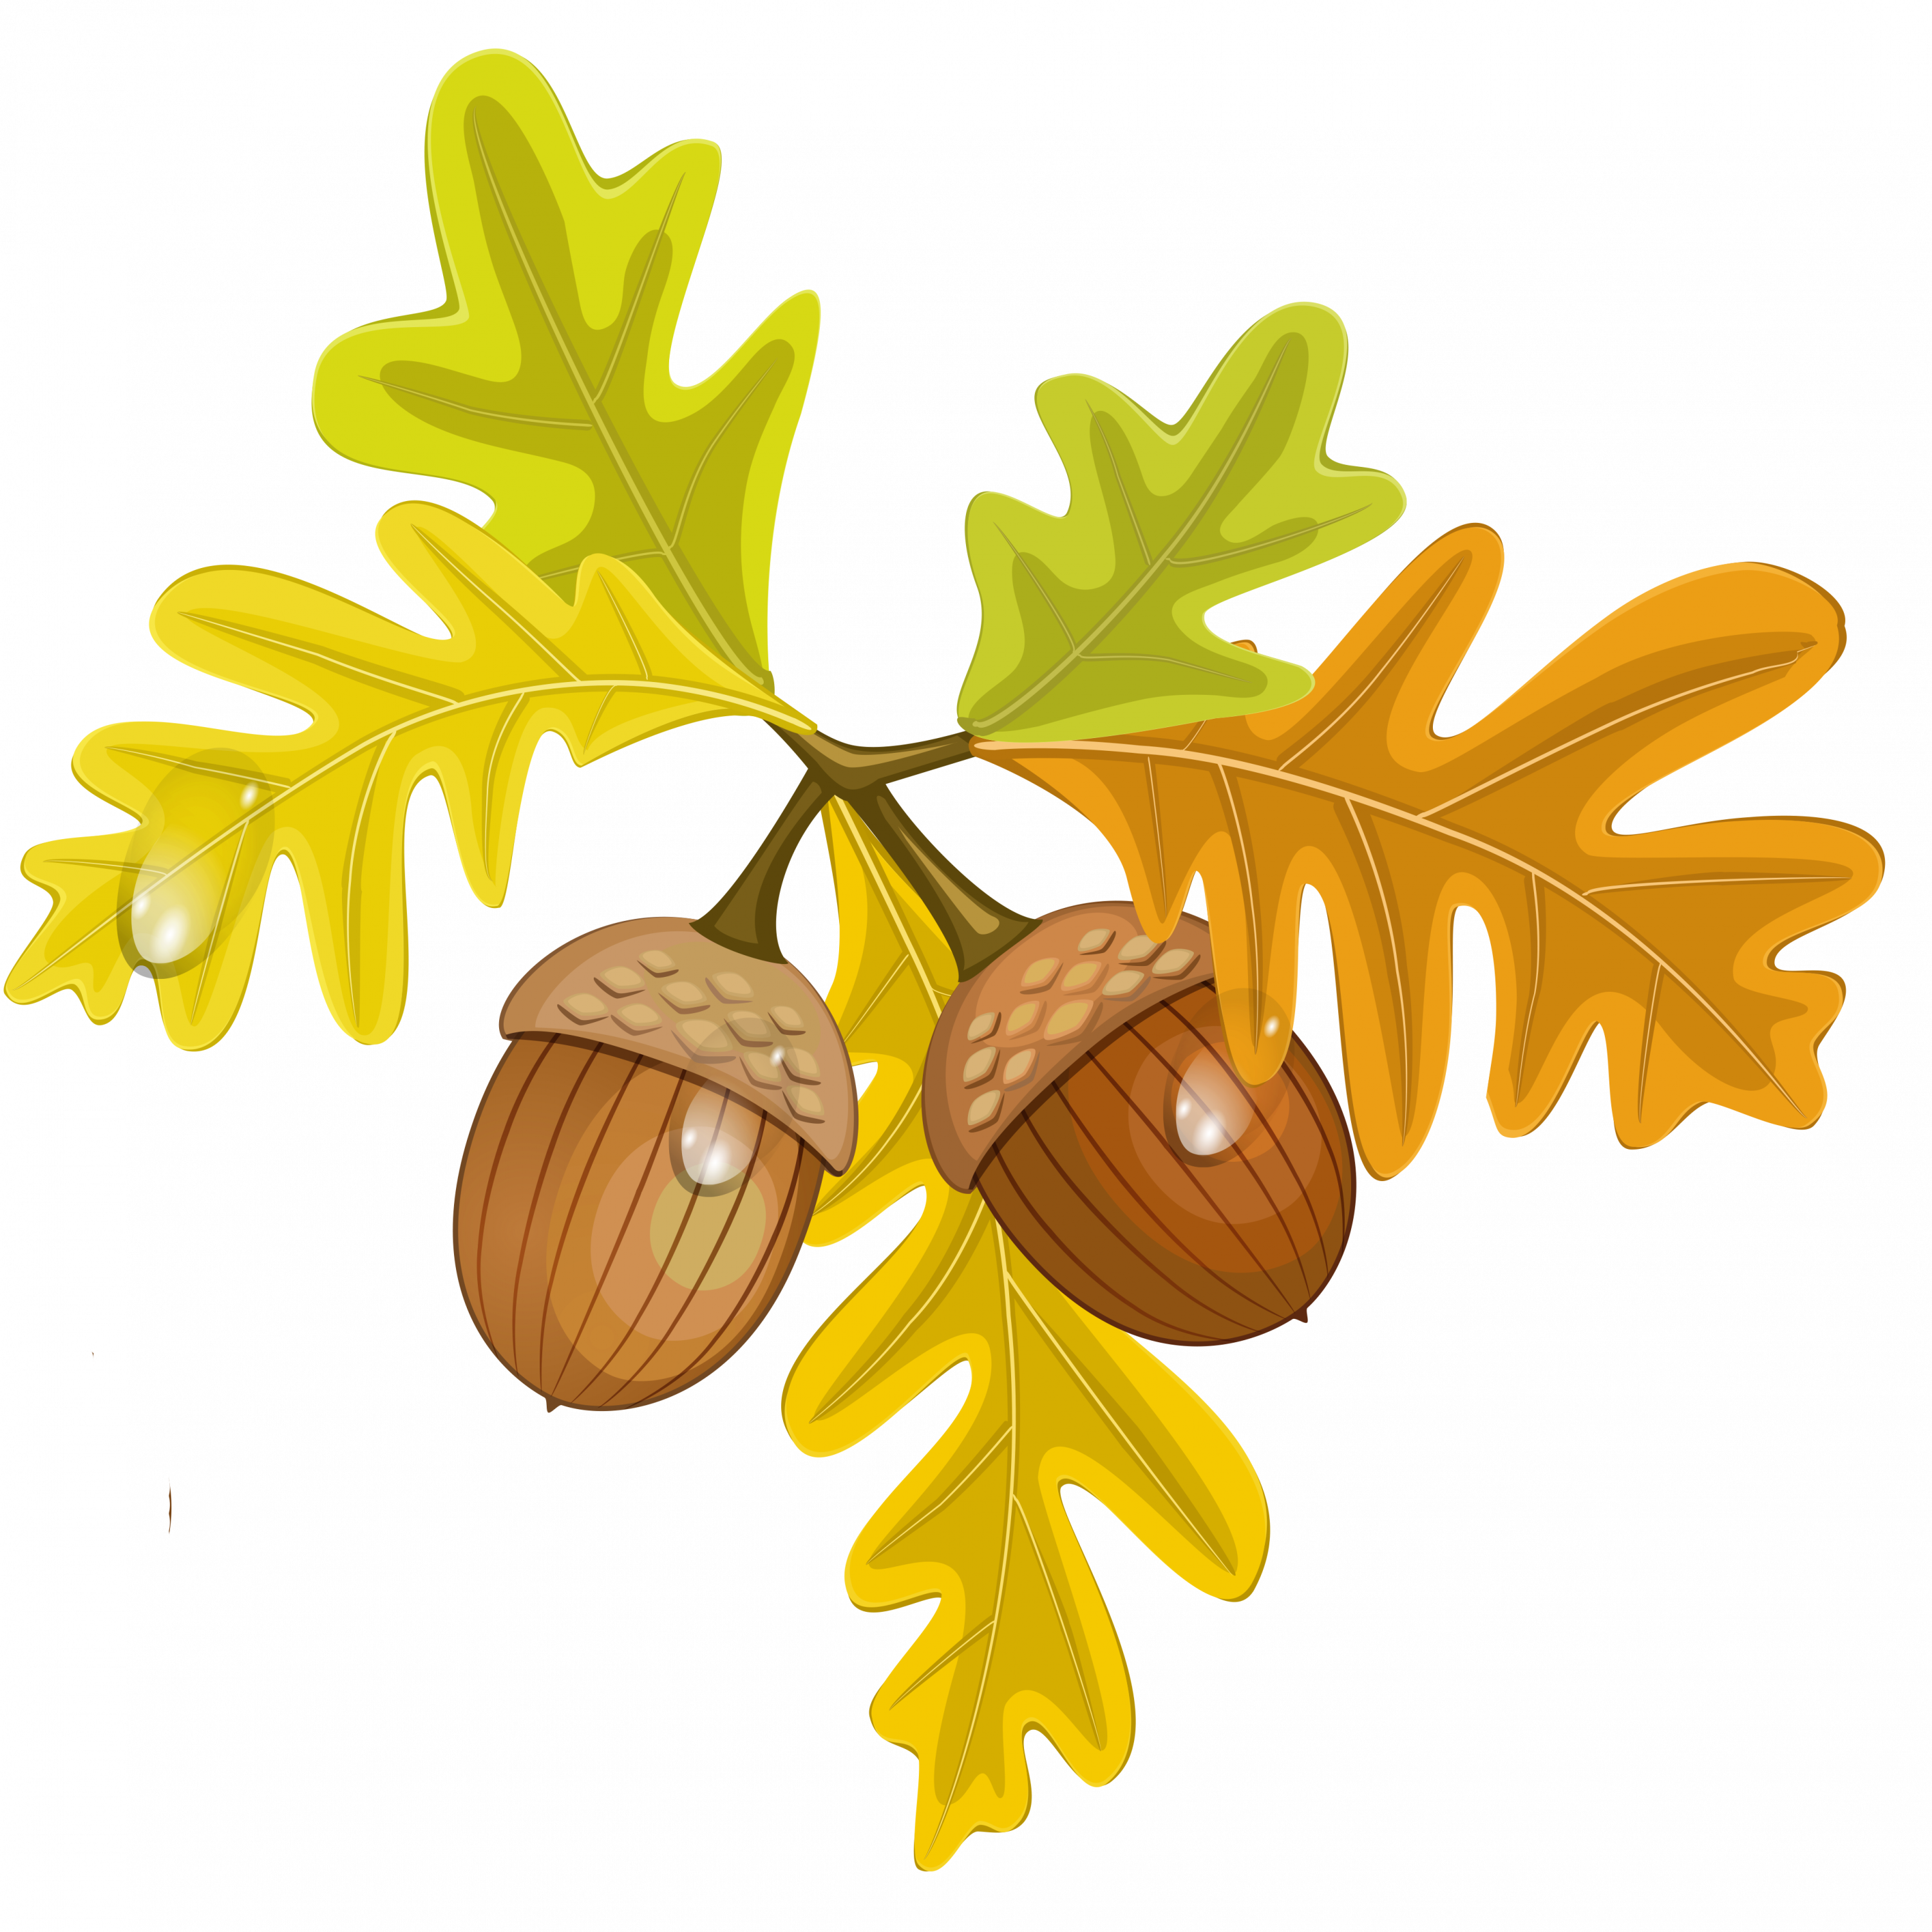 Acorn clipart small Clipart Maple leaves with leaves